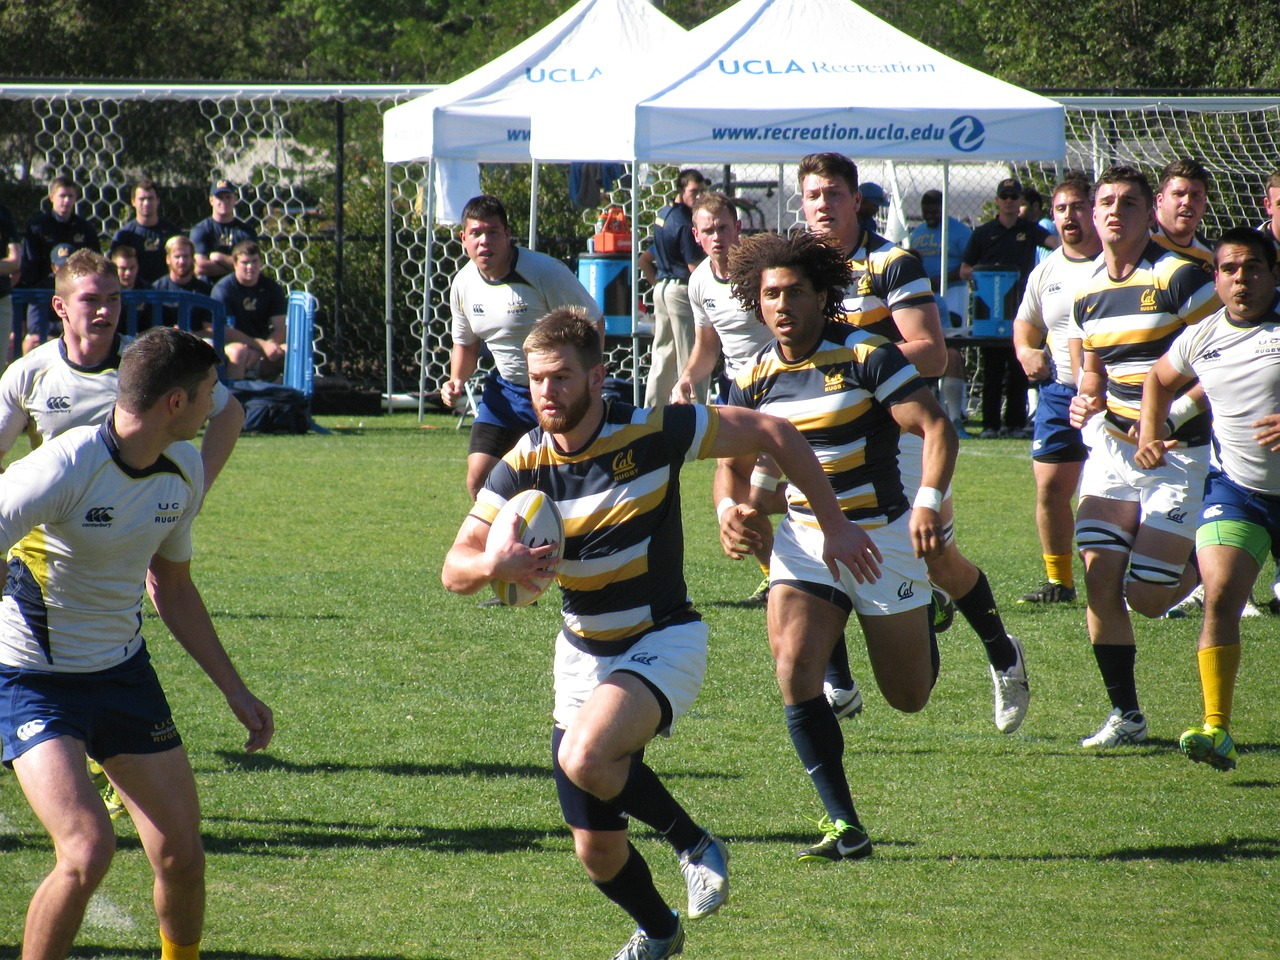 rugby-1323586_1280